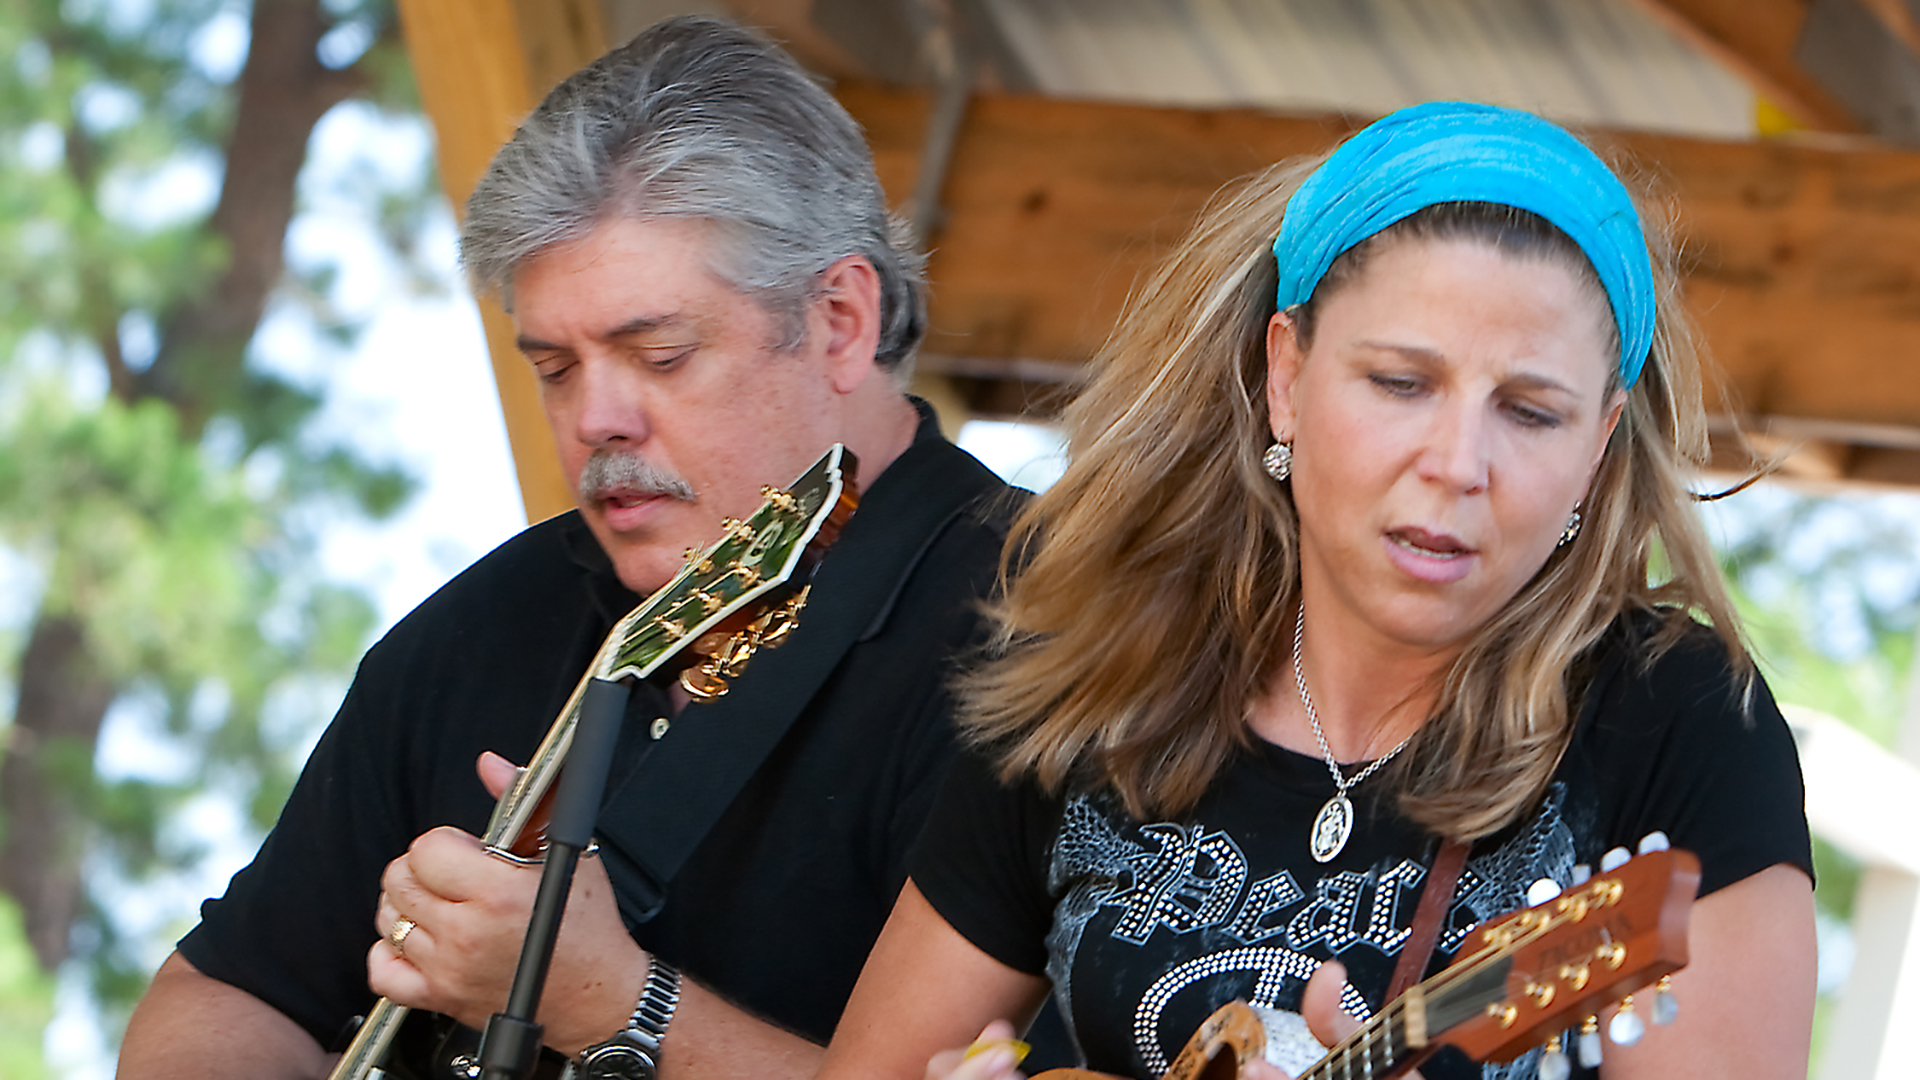 Top Texas musicians Terri Hendrix, Lloyd Maines to perform at next Yellow City Sounds concert